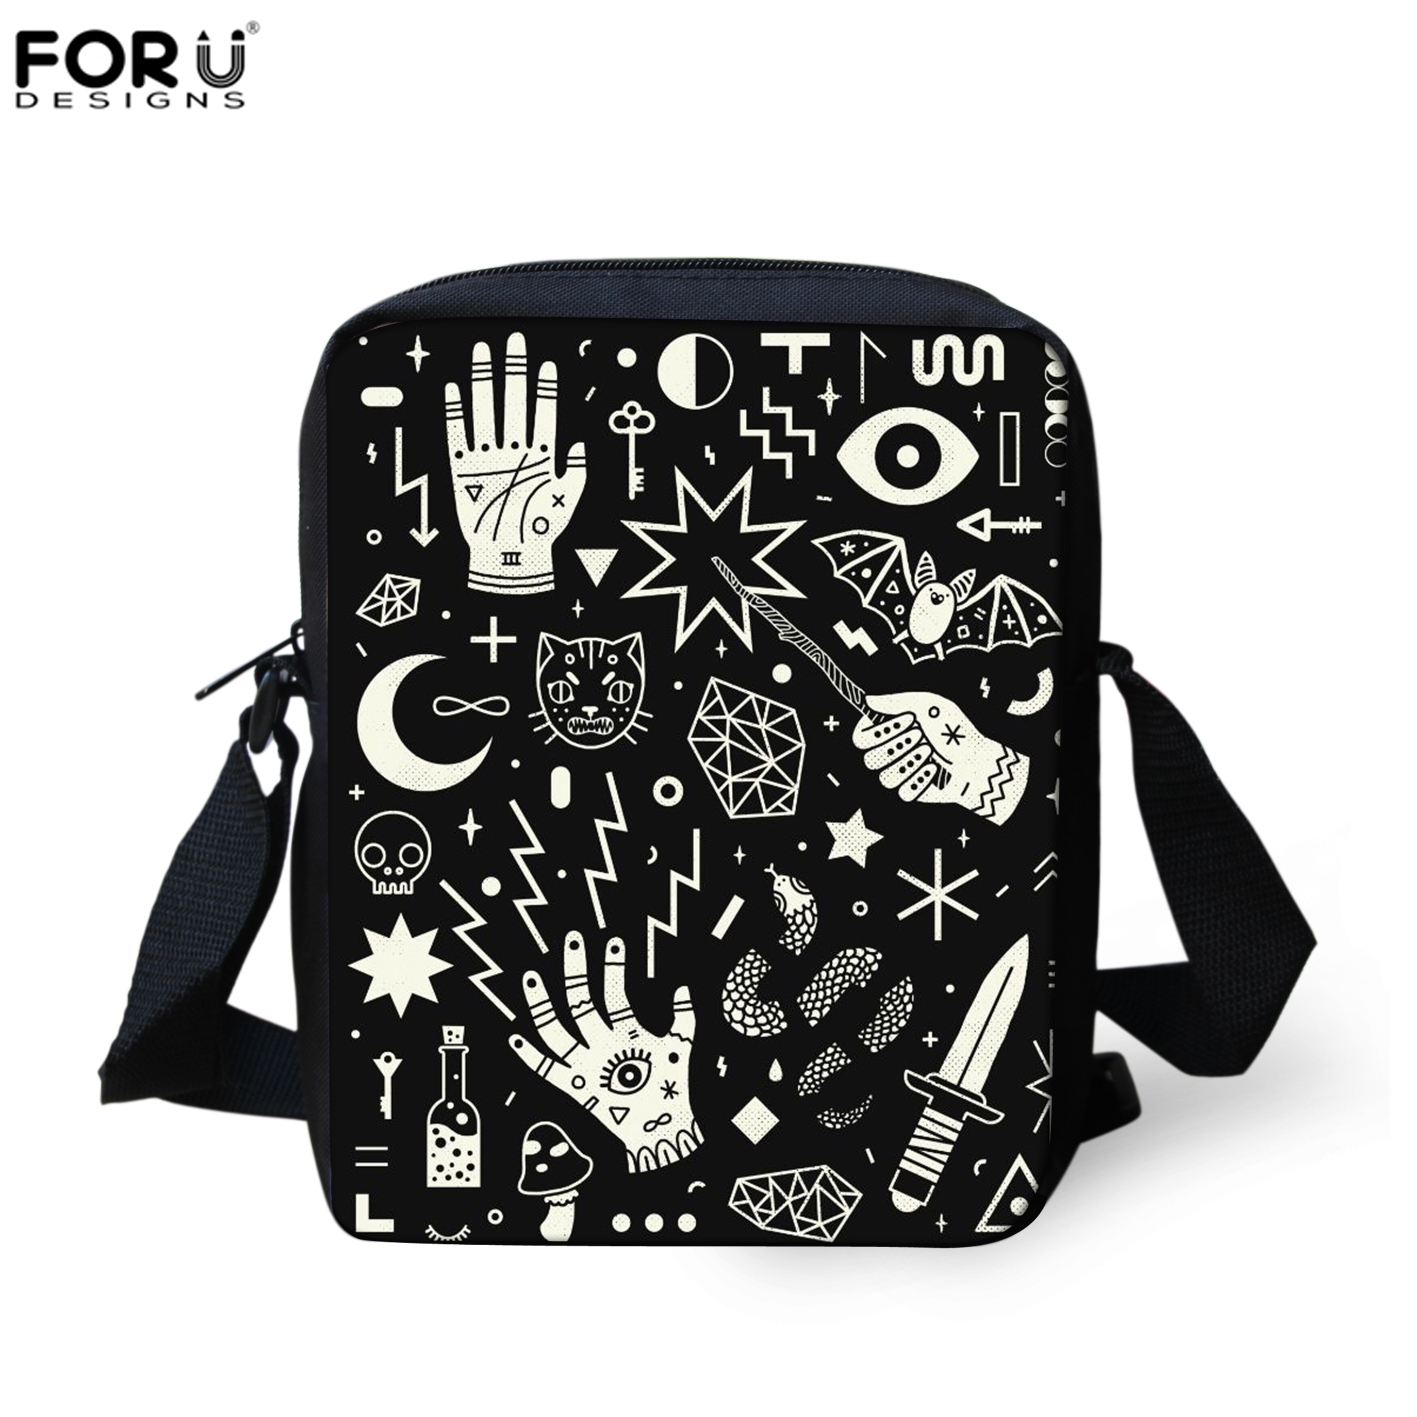 FORUDESIGNS SpellBound Witchcraft Ouija Crafty Pattern Crosssbody Messenger Bags Women Hand Bag Mini Shopping Shoulder New